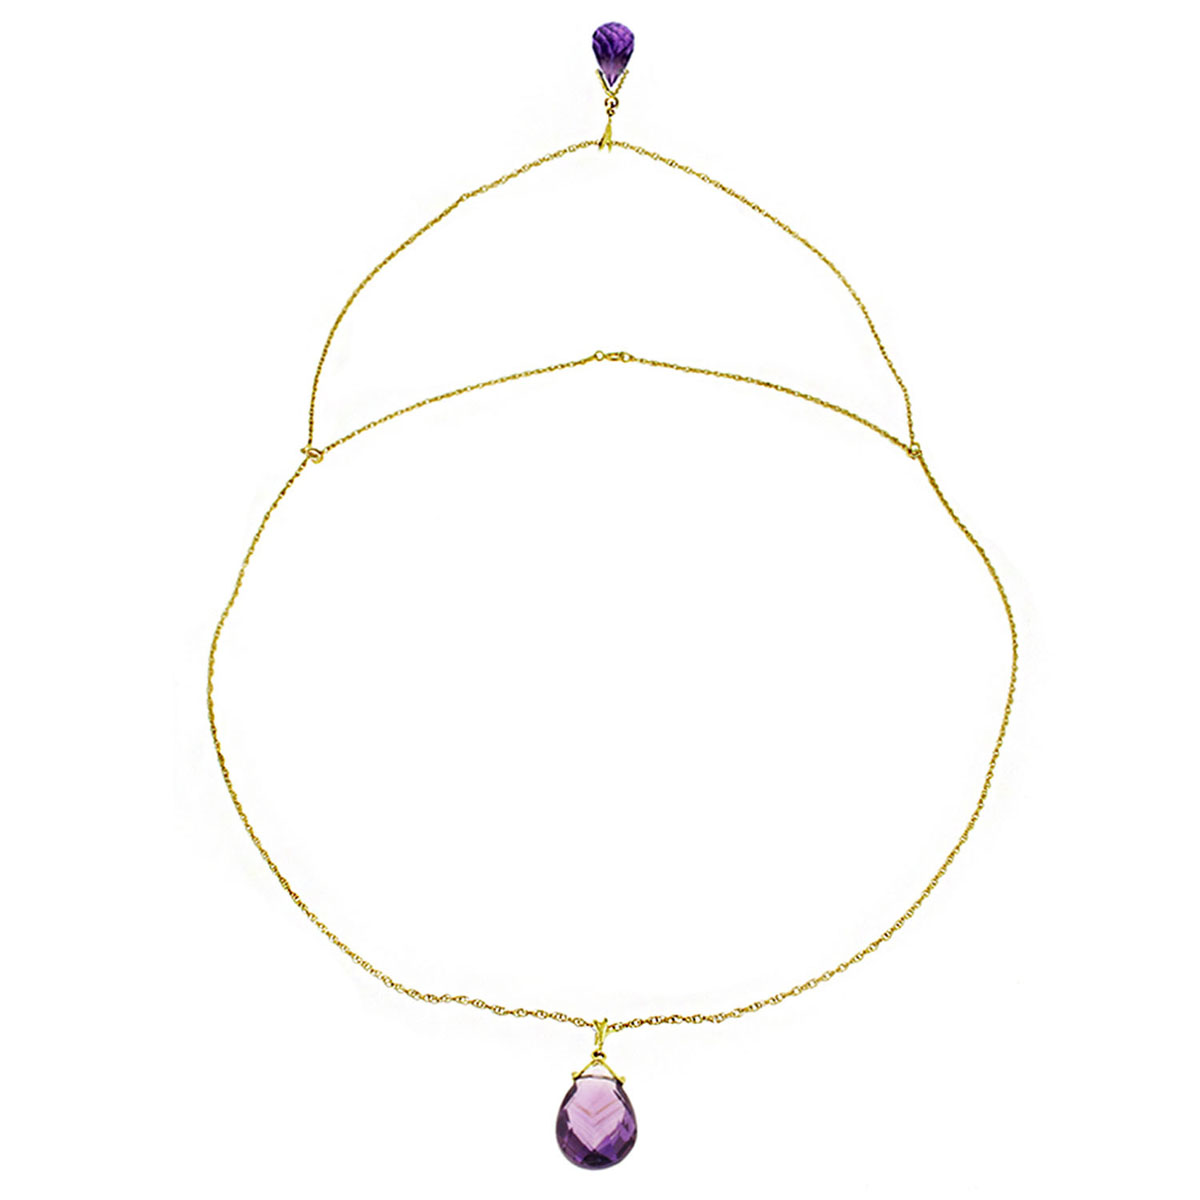 Amethyst Back Drop Pendant Necklace 7.5 ctw in 9ct Gold